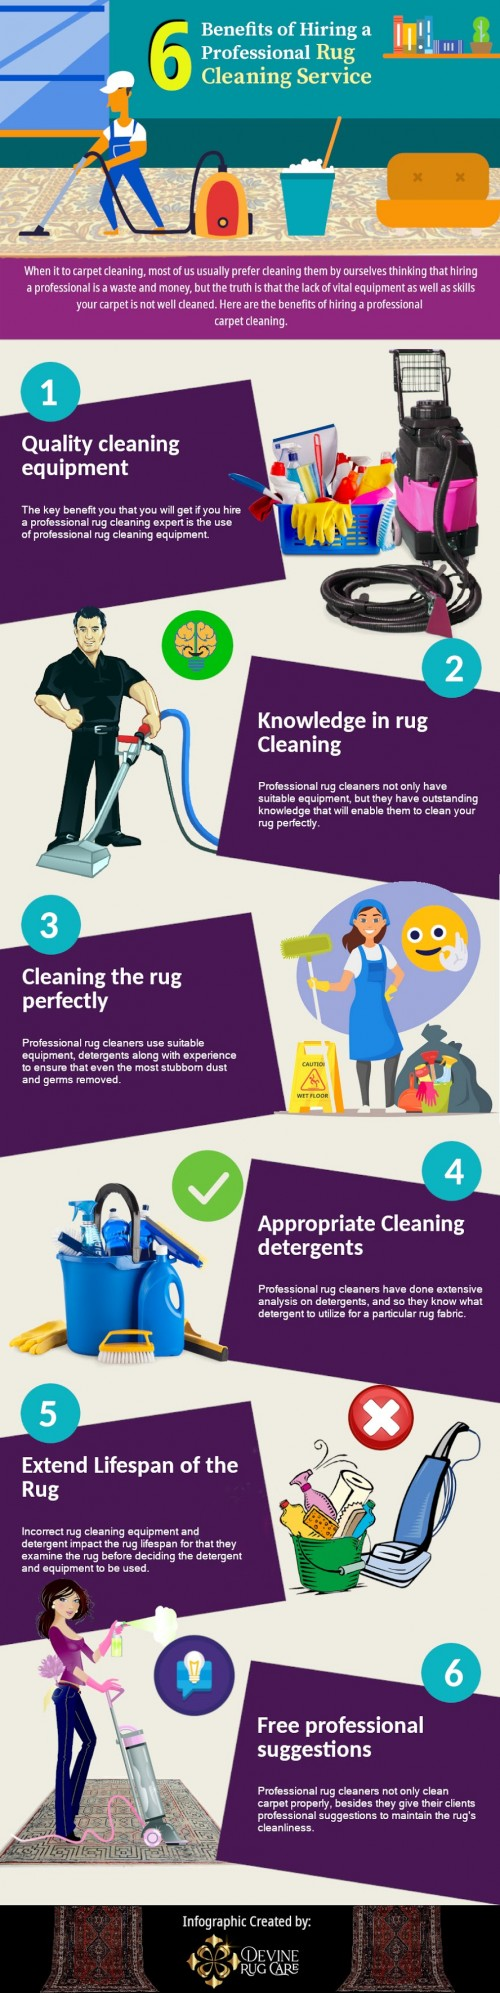 6-benefits-of-hiring-a-professional-rug-cleaning-service9e9e346d46824eb4.jpg